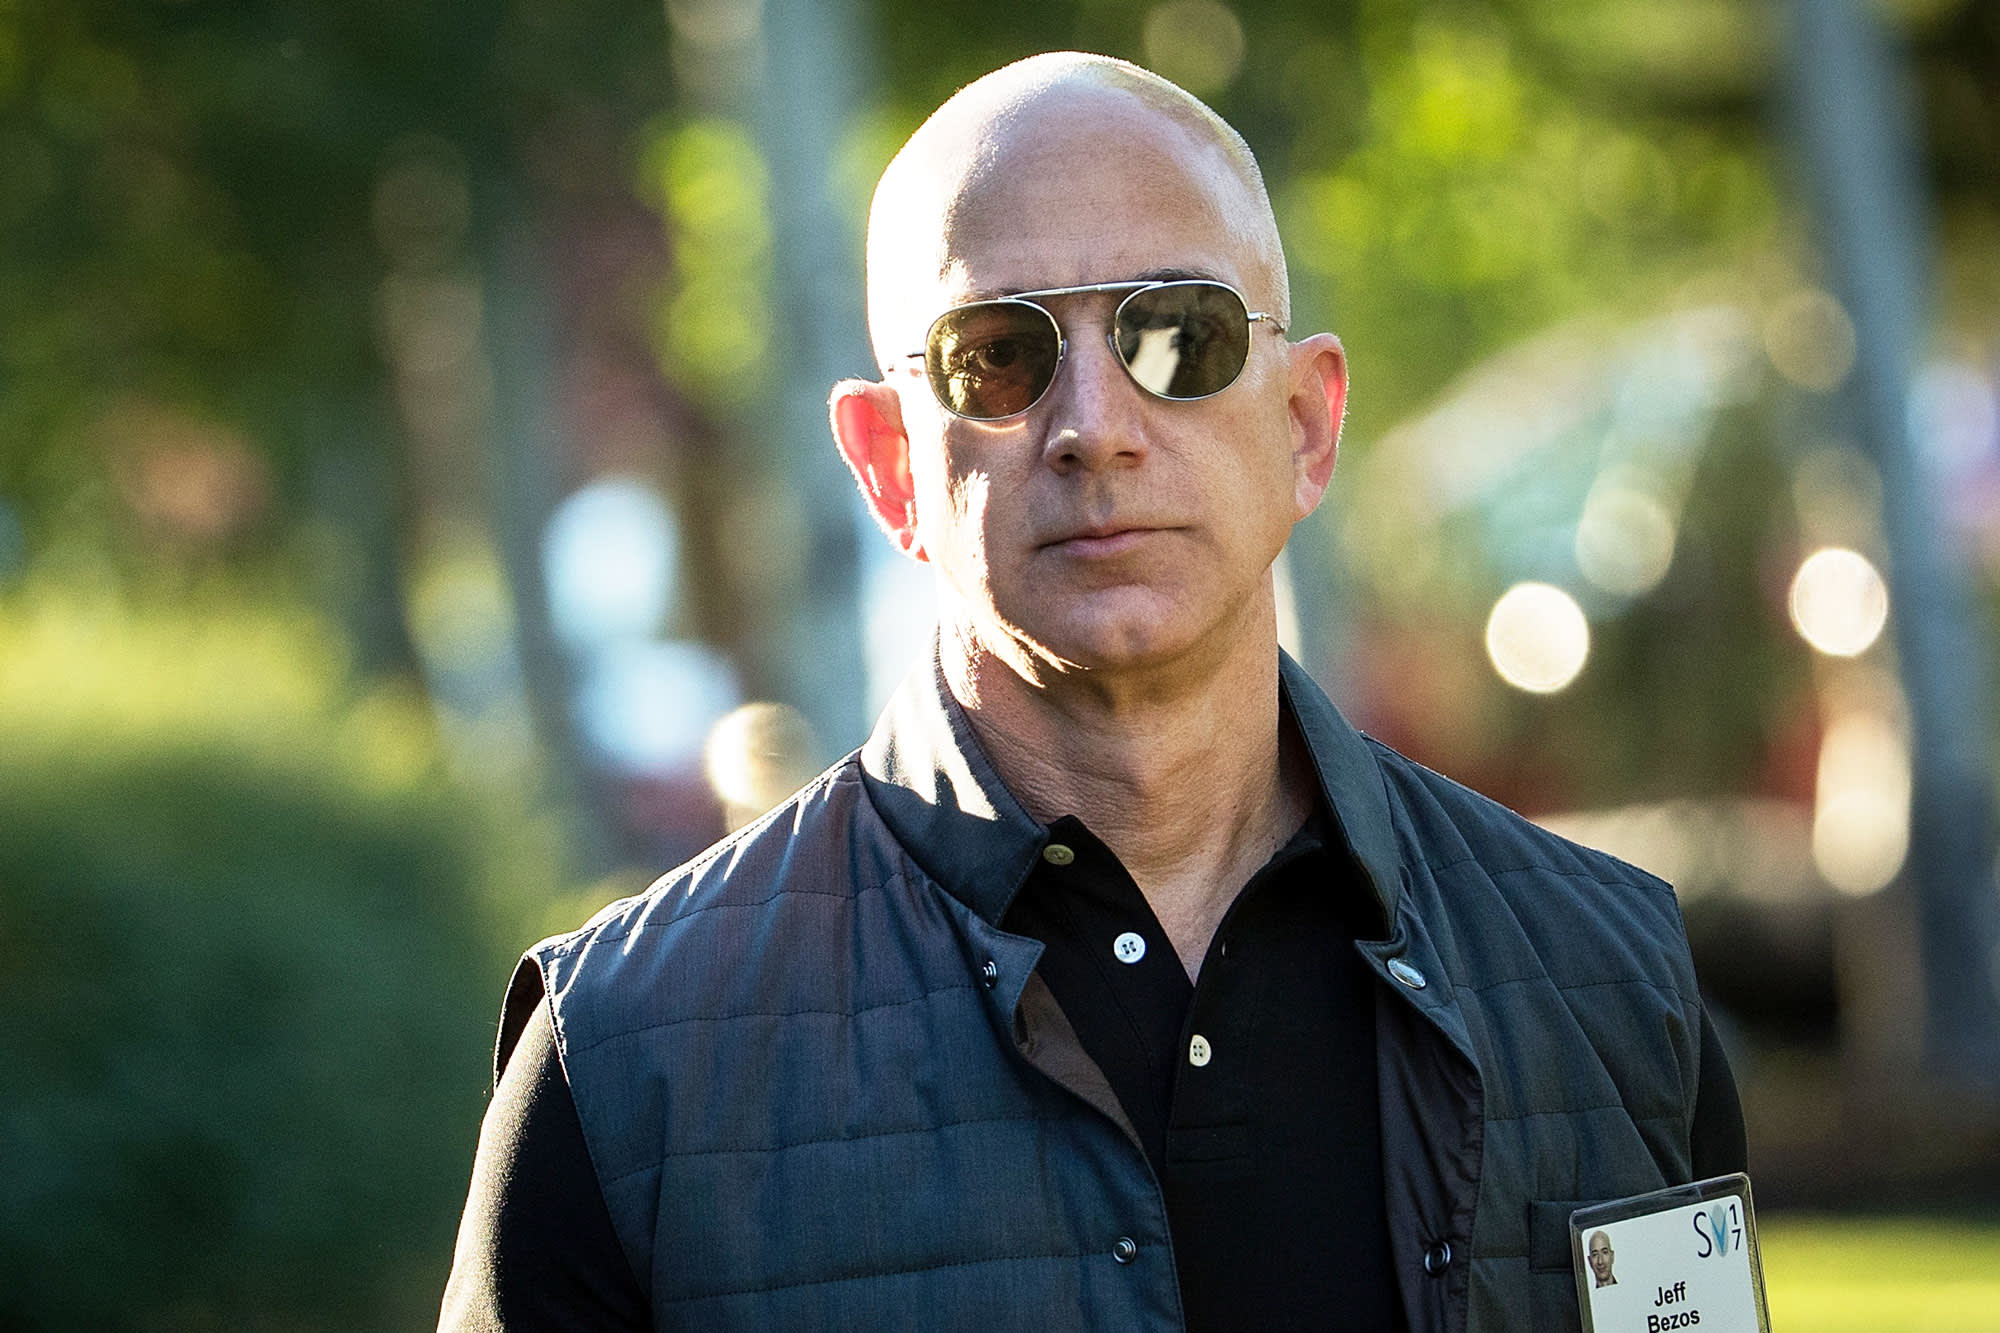 Jeff Bezos: This is the 'smartest thing we ever did' at Amazon